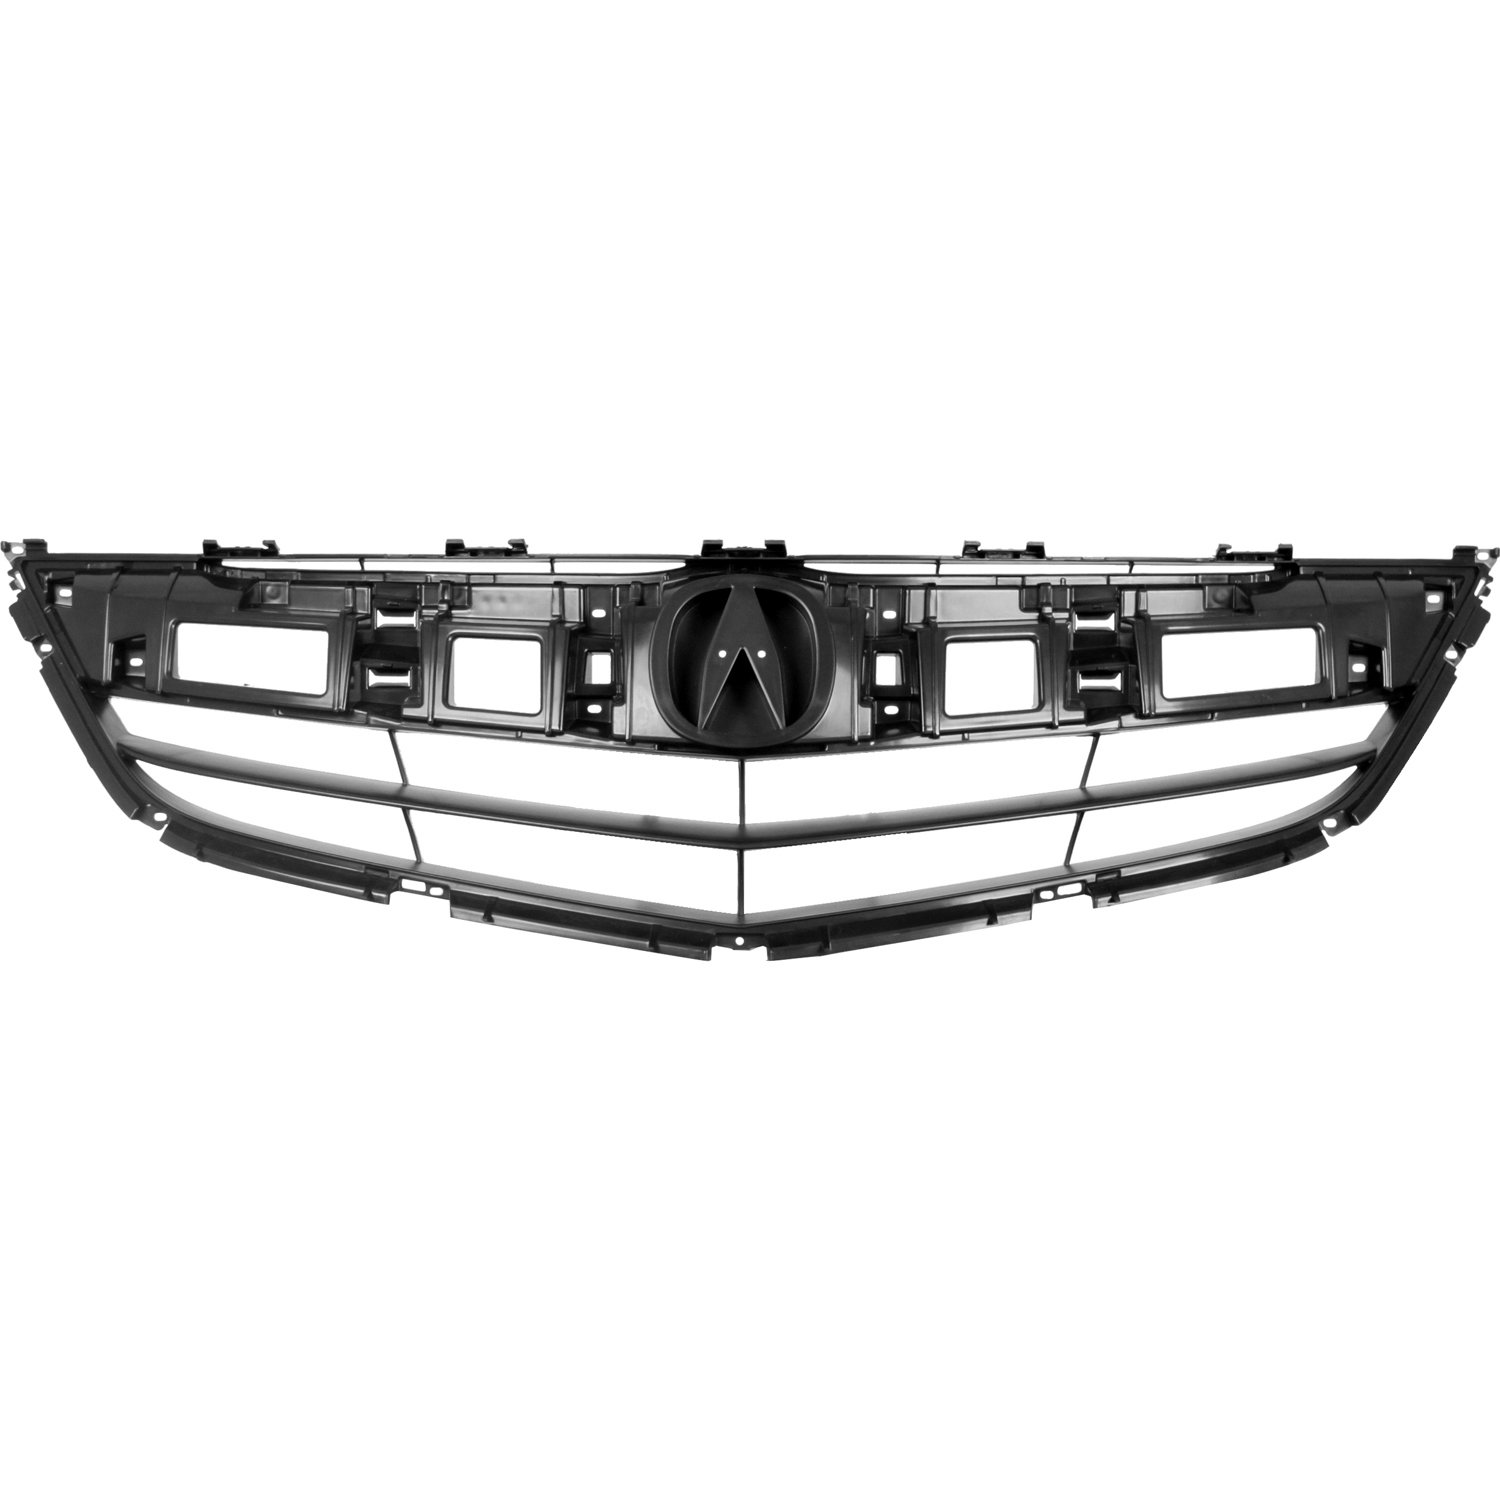 CPP Replacement Grille AC1200123 For 2013-2015 Acura ILX